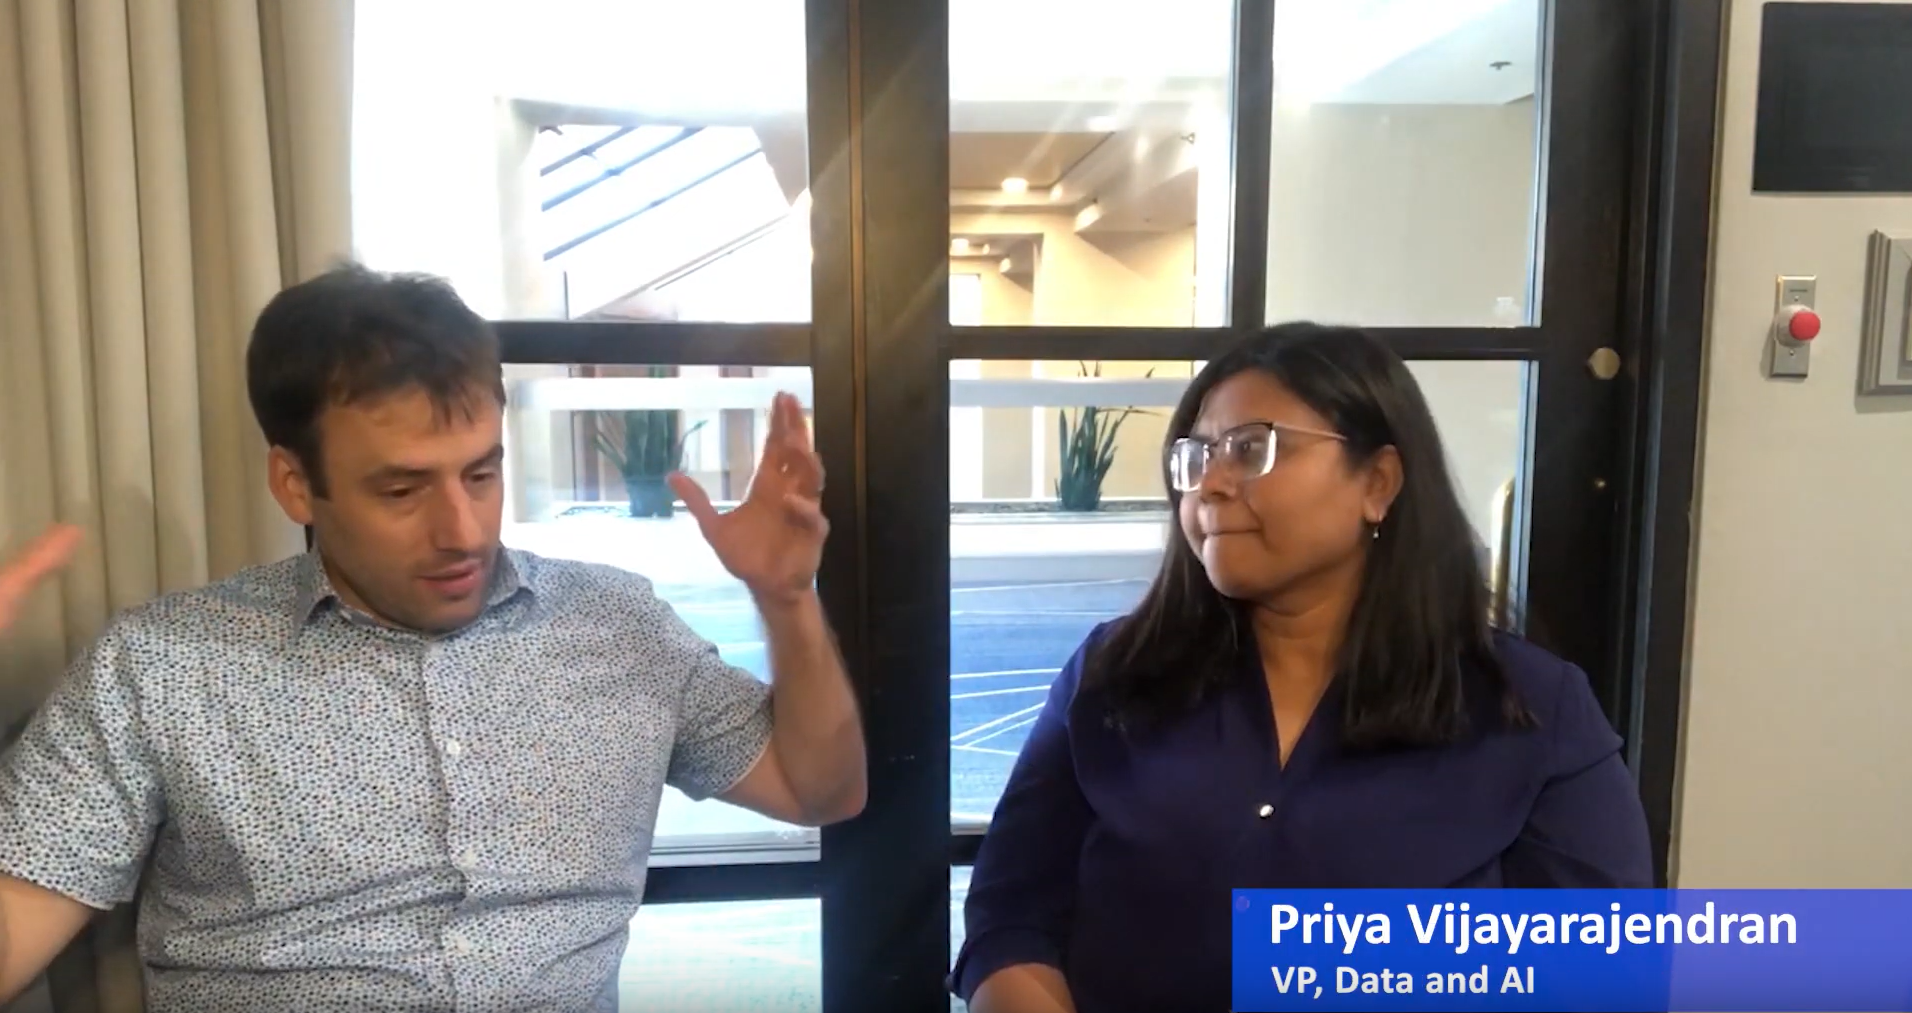 Tuesdays with Corey: Microsoft Ignite DATA announcements with Priya Vijayarajendran